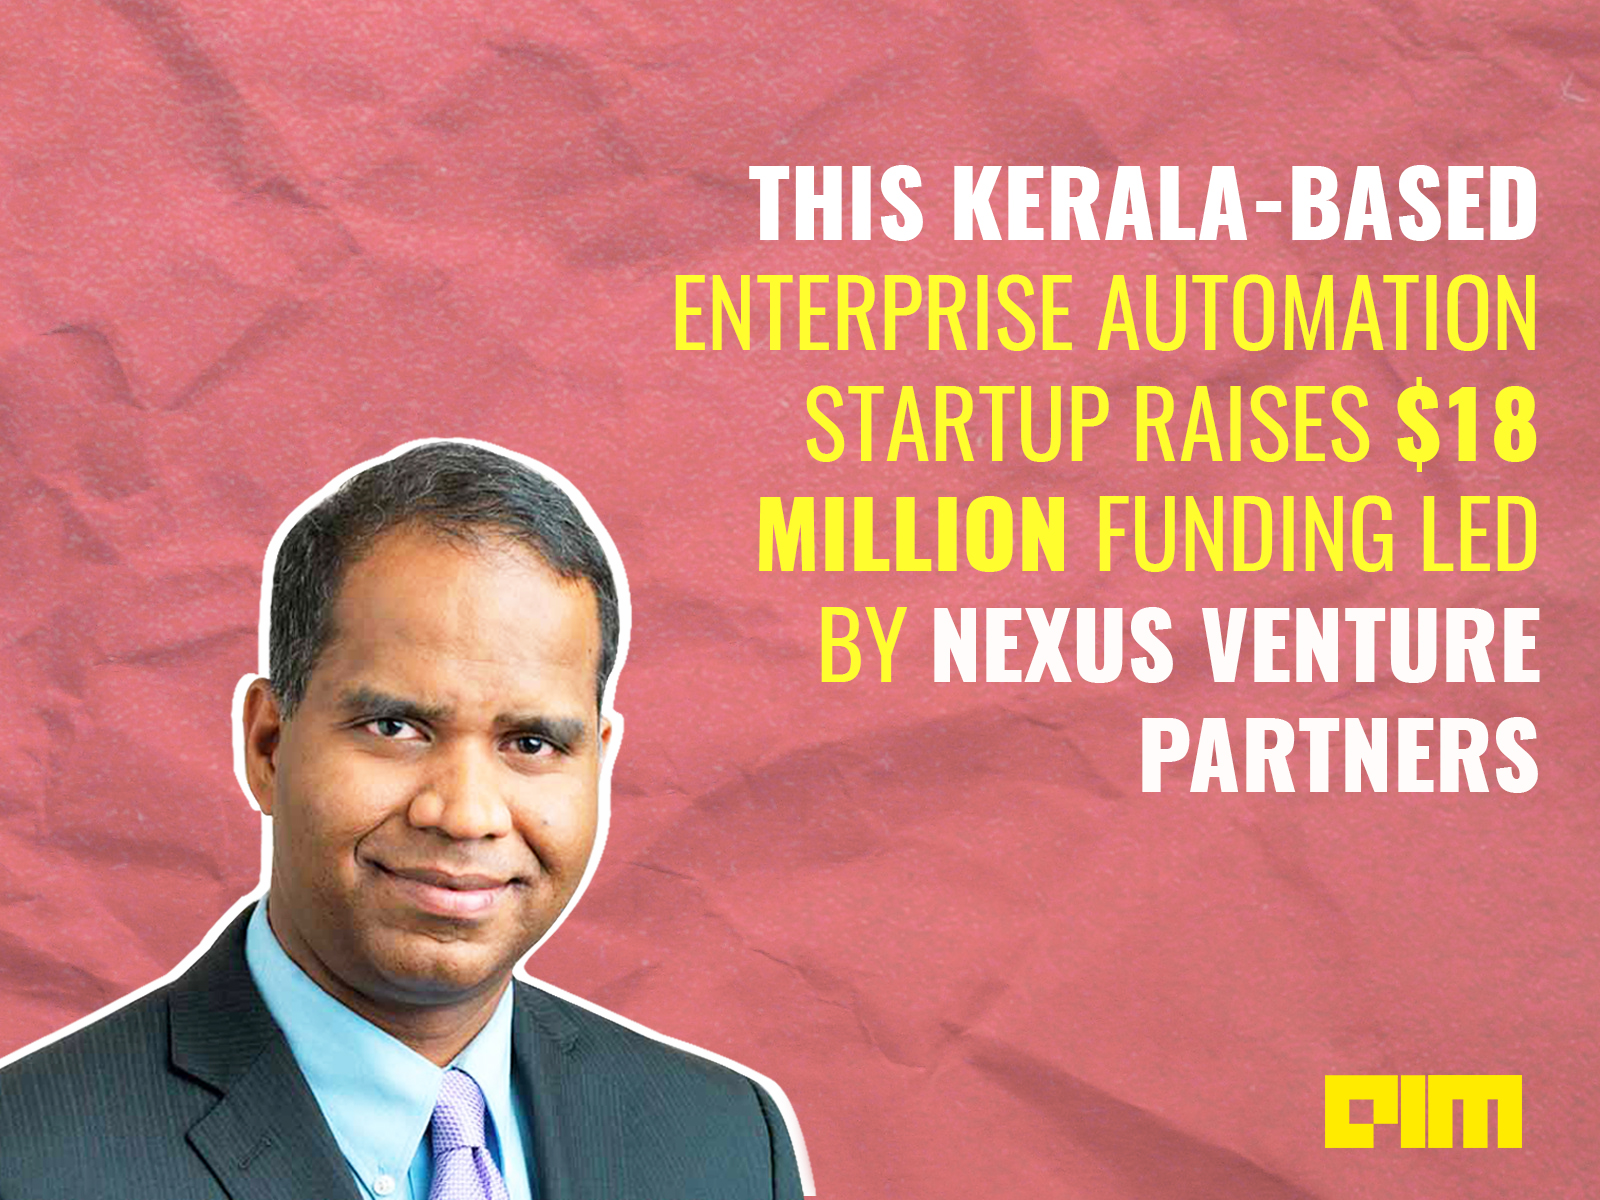 THIS KERALA-BASED ENTERPRISE AUTOMATION STARTUP RAISES $18 MILLION FUNDING LED BY NEXUS VENTURE PARTNERS